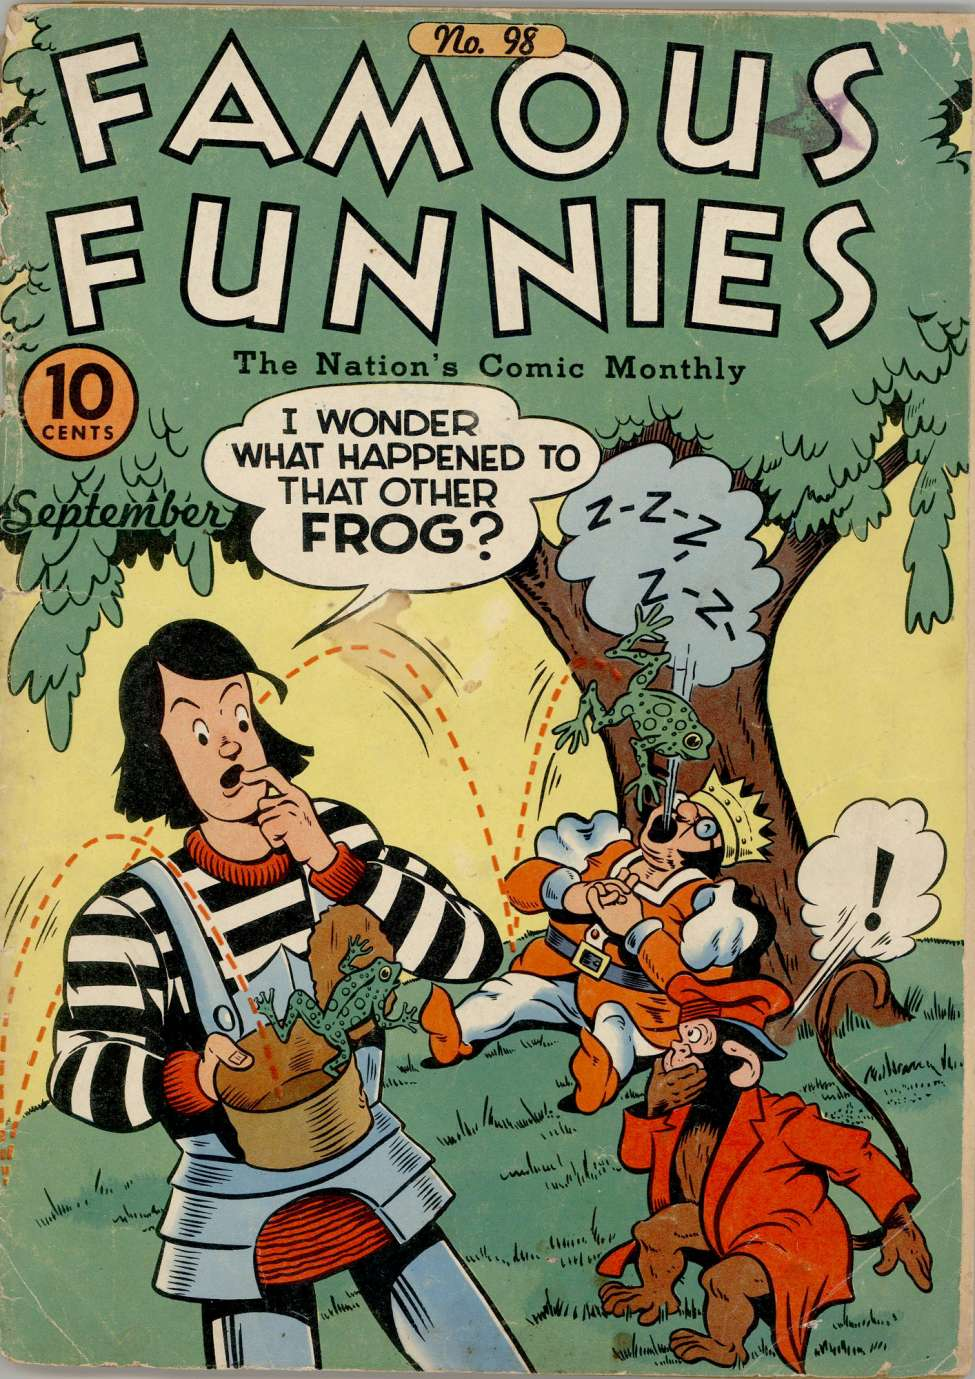 Comic Book Cover For Famous Funnies #98